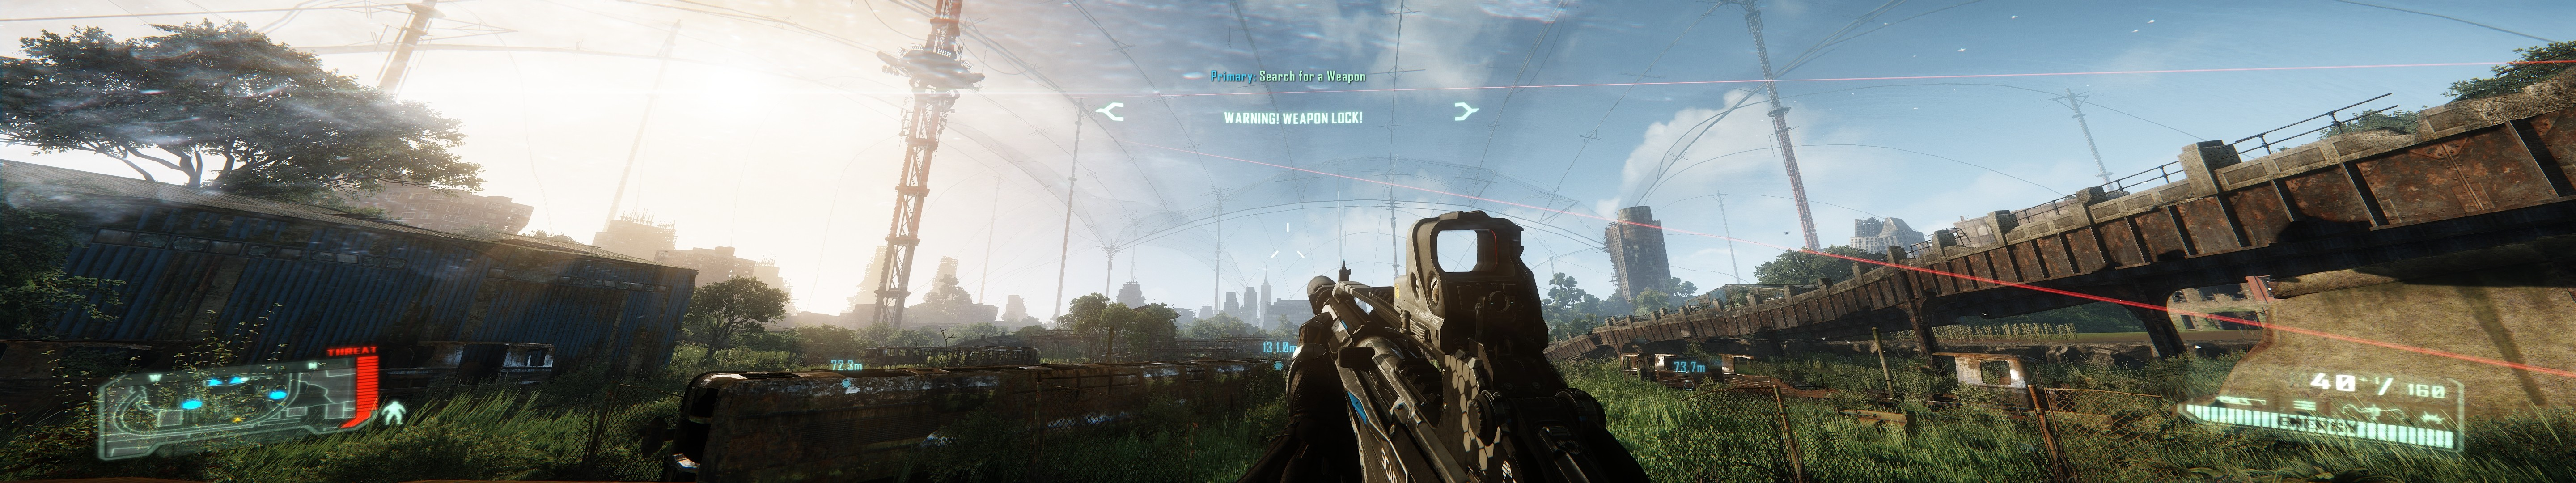 Crysis 3 at 5760x1080 resolution, across 3 screens ...